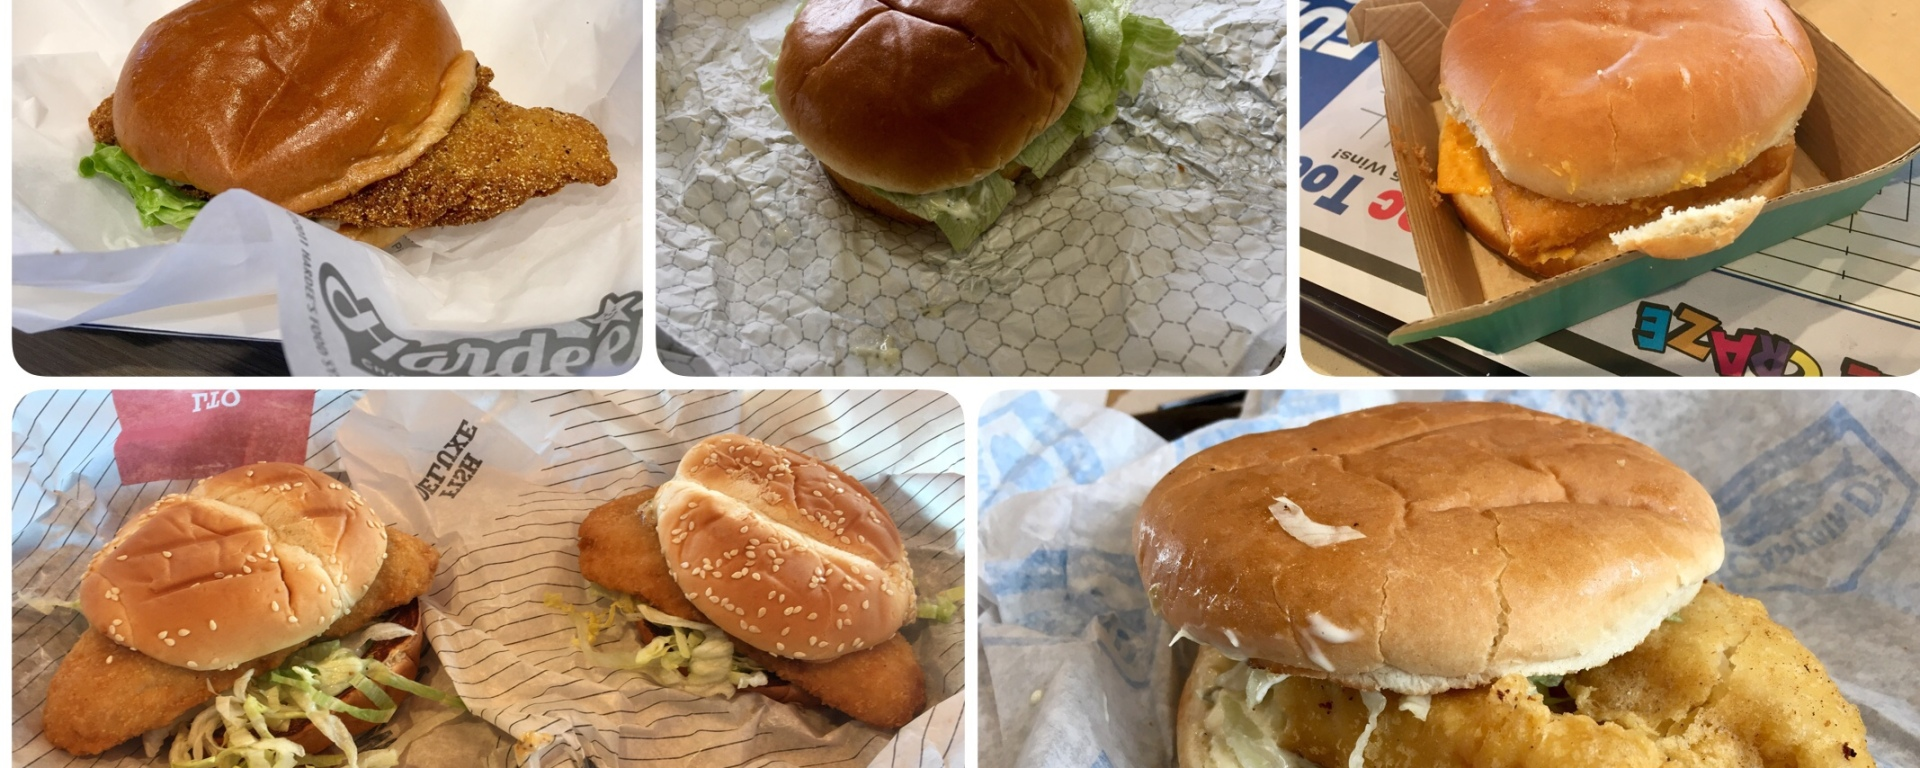 Best Fast Food Fish Sandwich 2020 Field Assignment: Lenten Fish Sandwich Tasting – Place at the Table